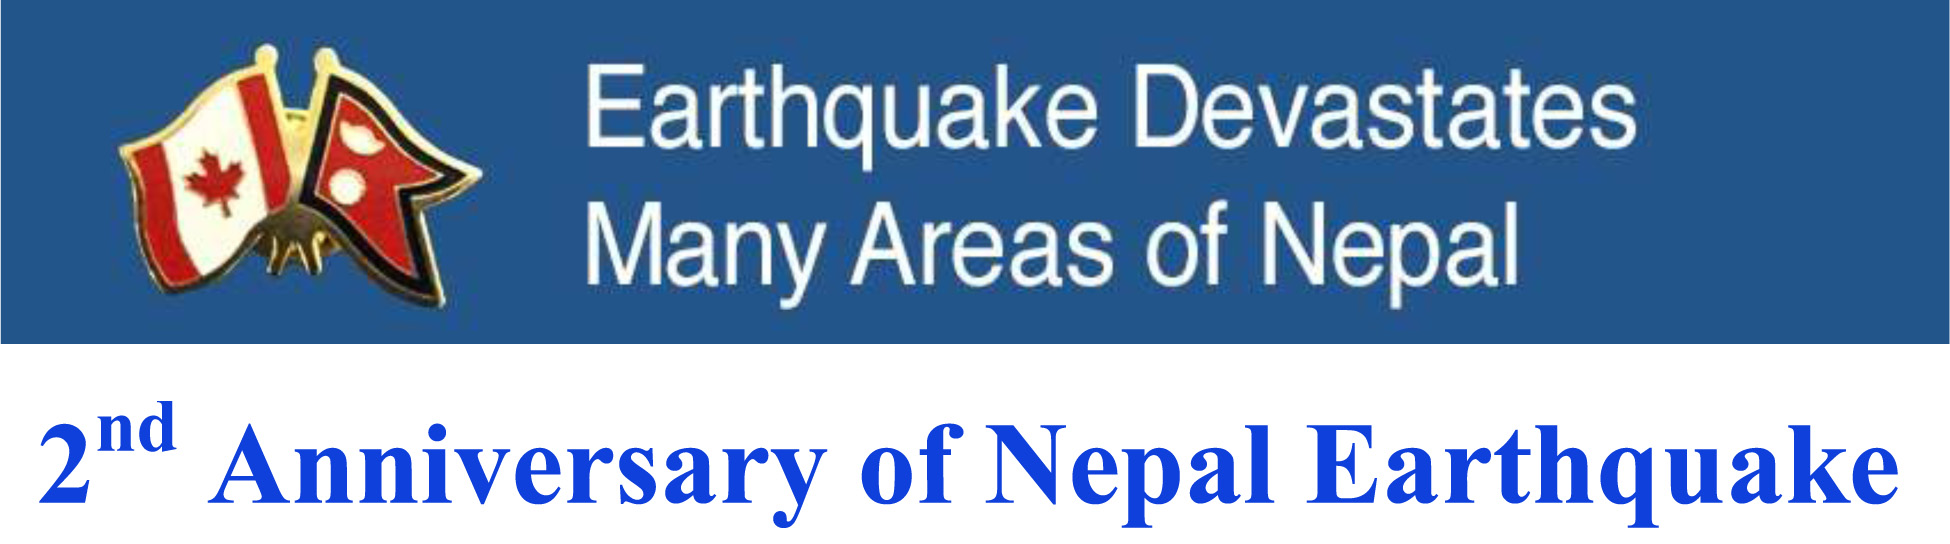 2nd Anniversary of Nepal Earthquake